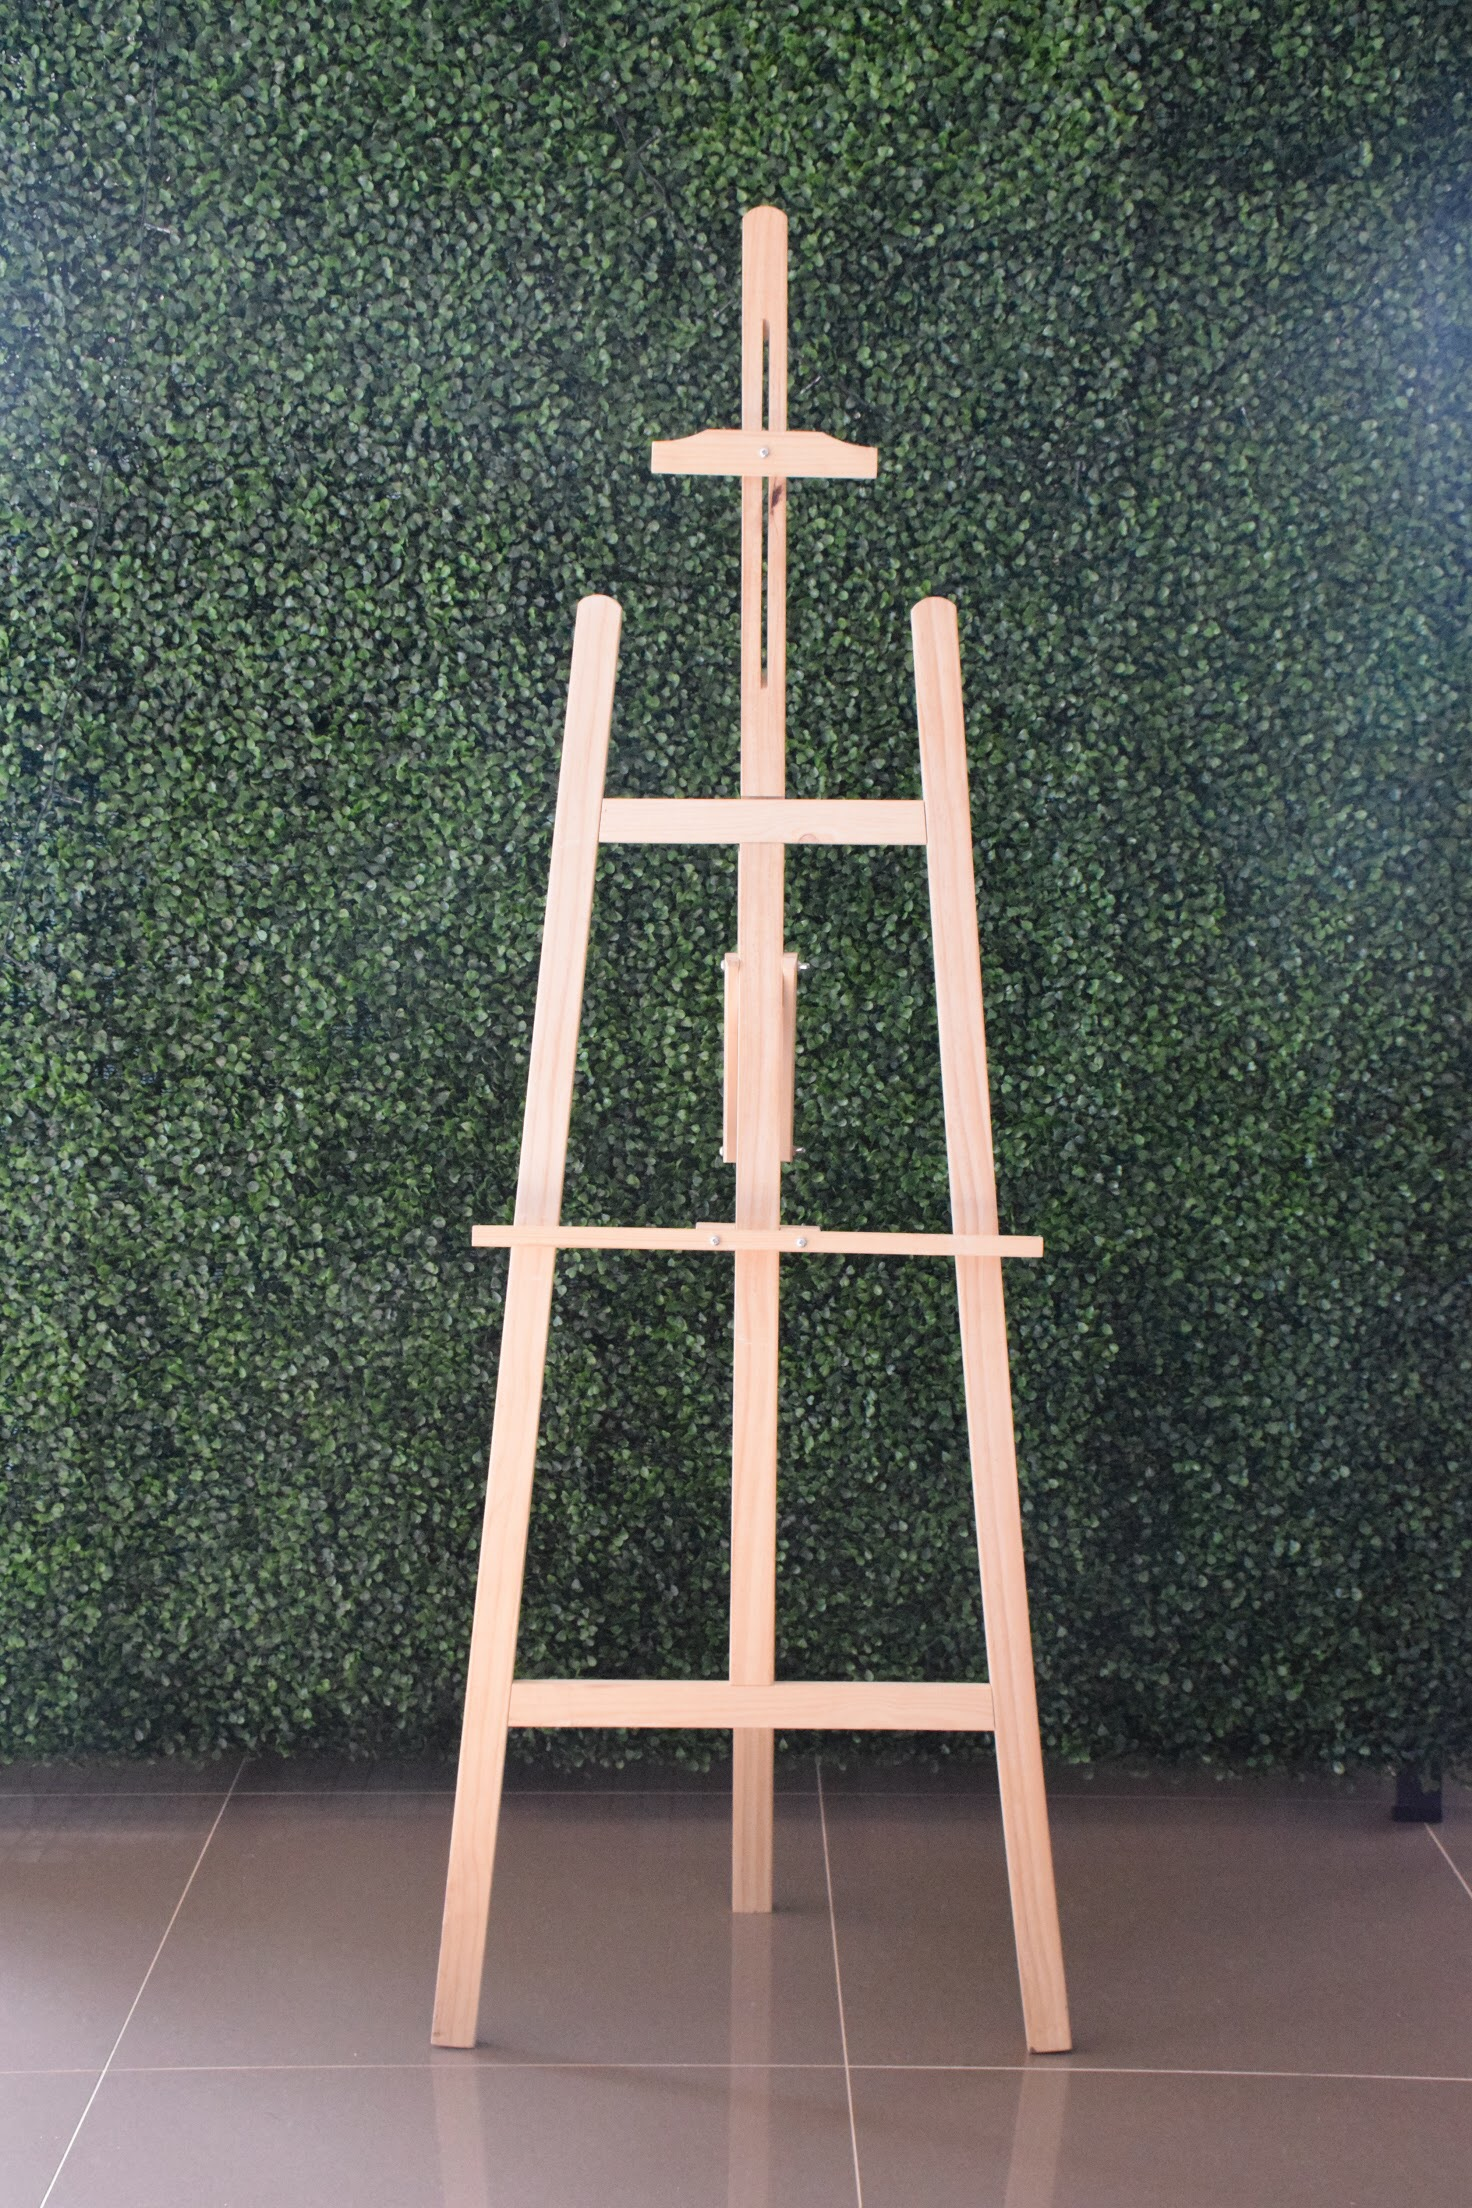 WOODEN EASEL X2. PLEASE CONTACT ME VIA FACEBOOK BUSINESS PAGE OR EMAIL FOR BOOKINGS. (LOCAL WANGARATTA AREA ONLY)